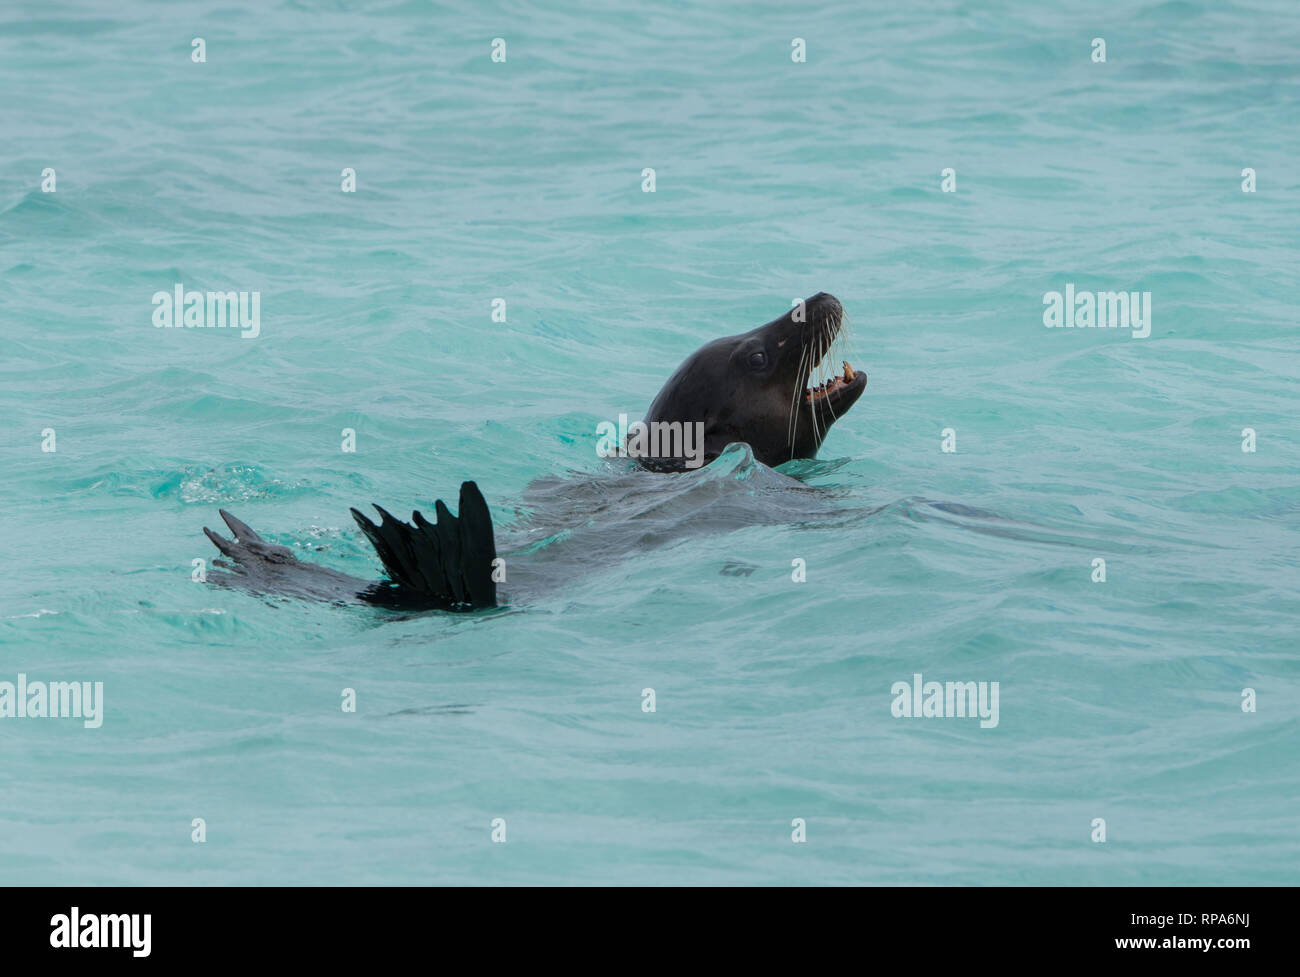 A Galapagos Sea Lion swimming just of the shore in Galapagos Islands Stock Photo